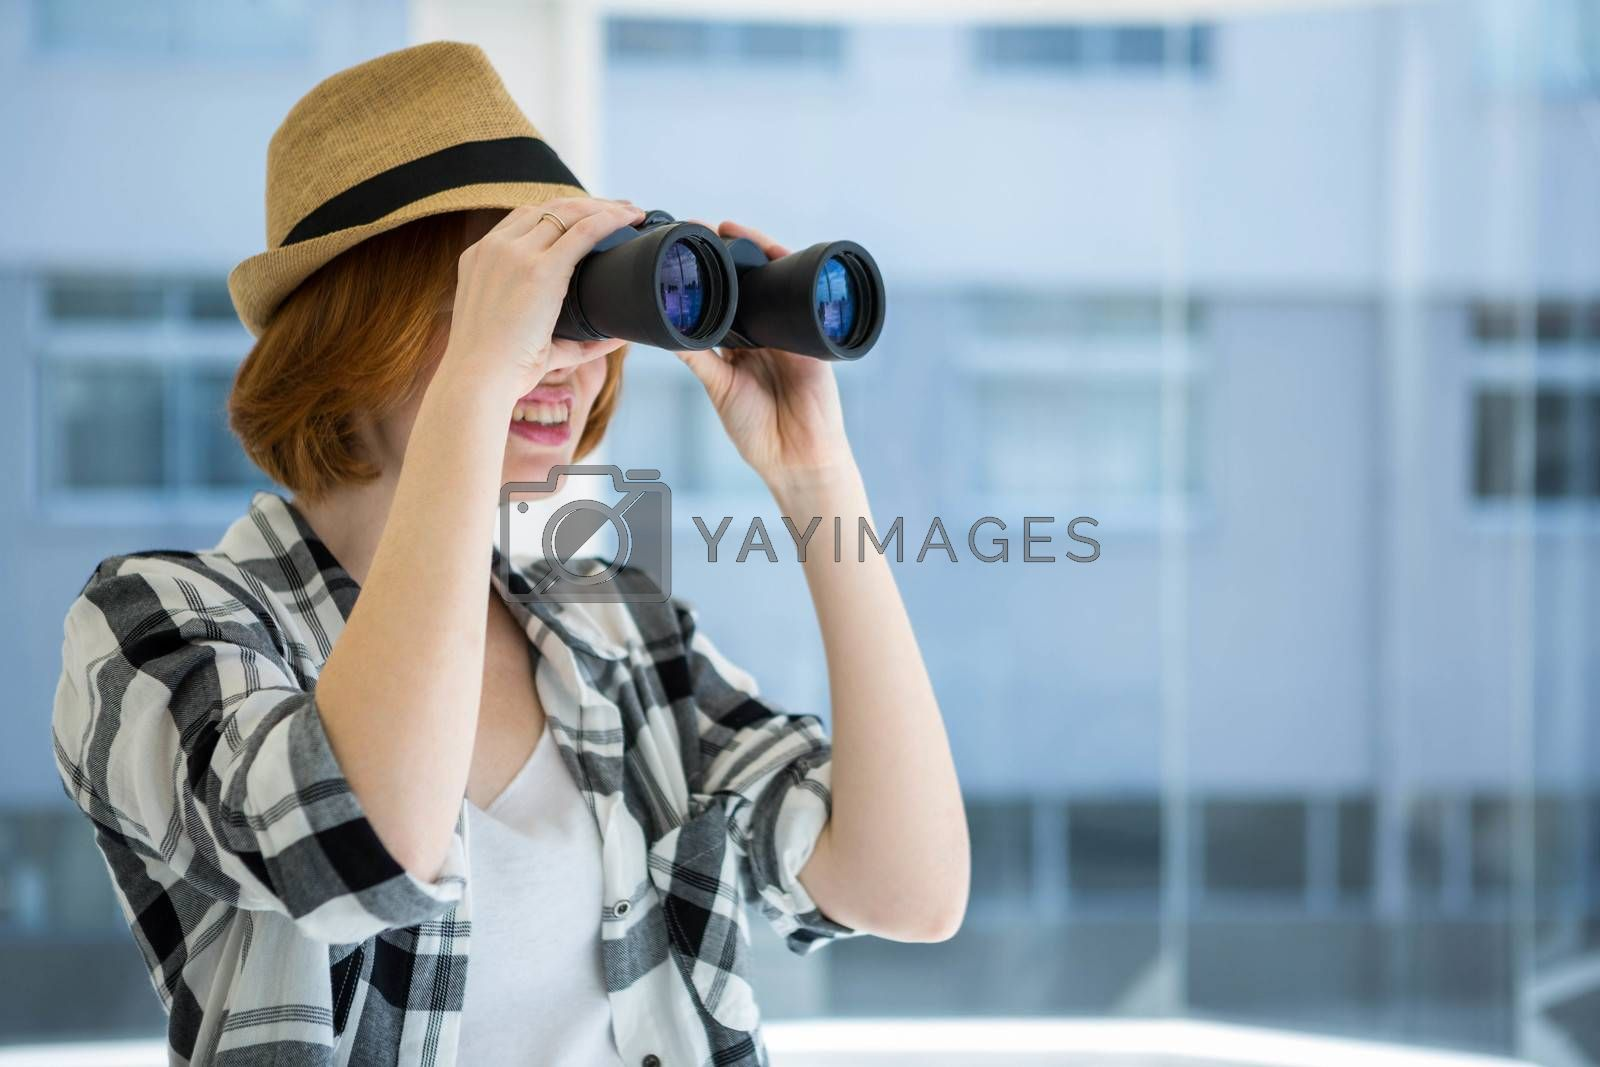 Red haired hipster looking through binoculars in front of a window